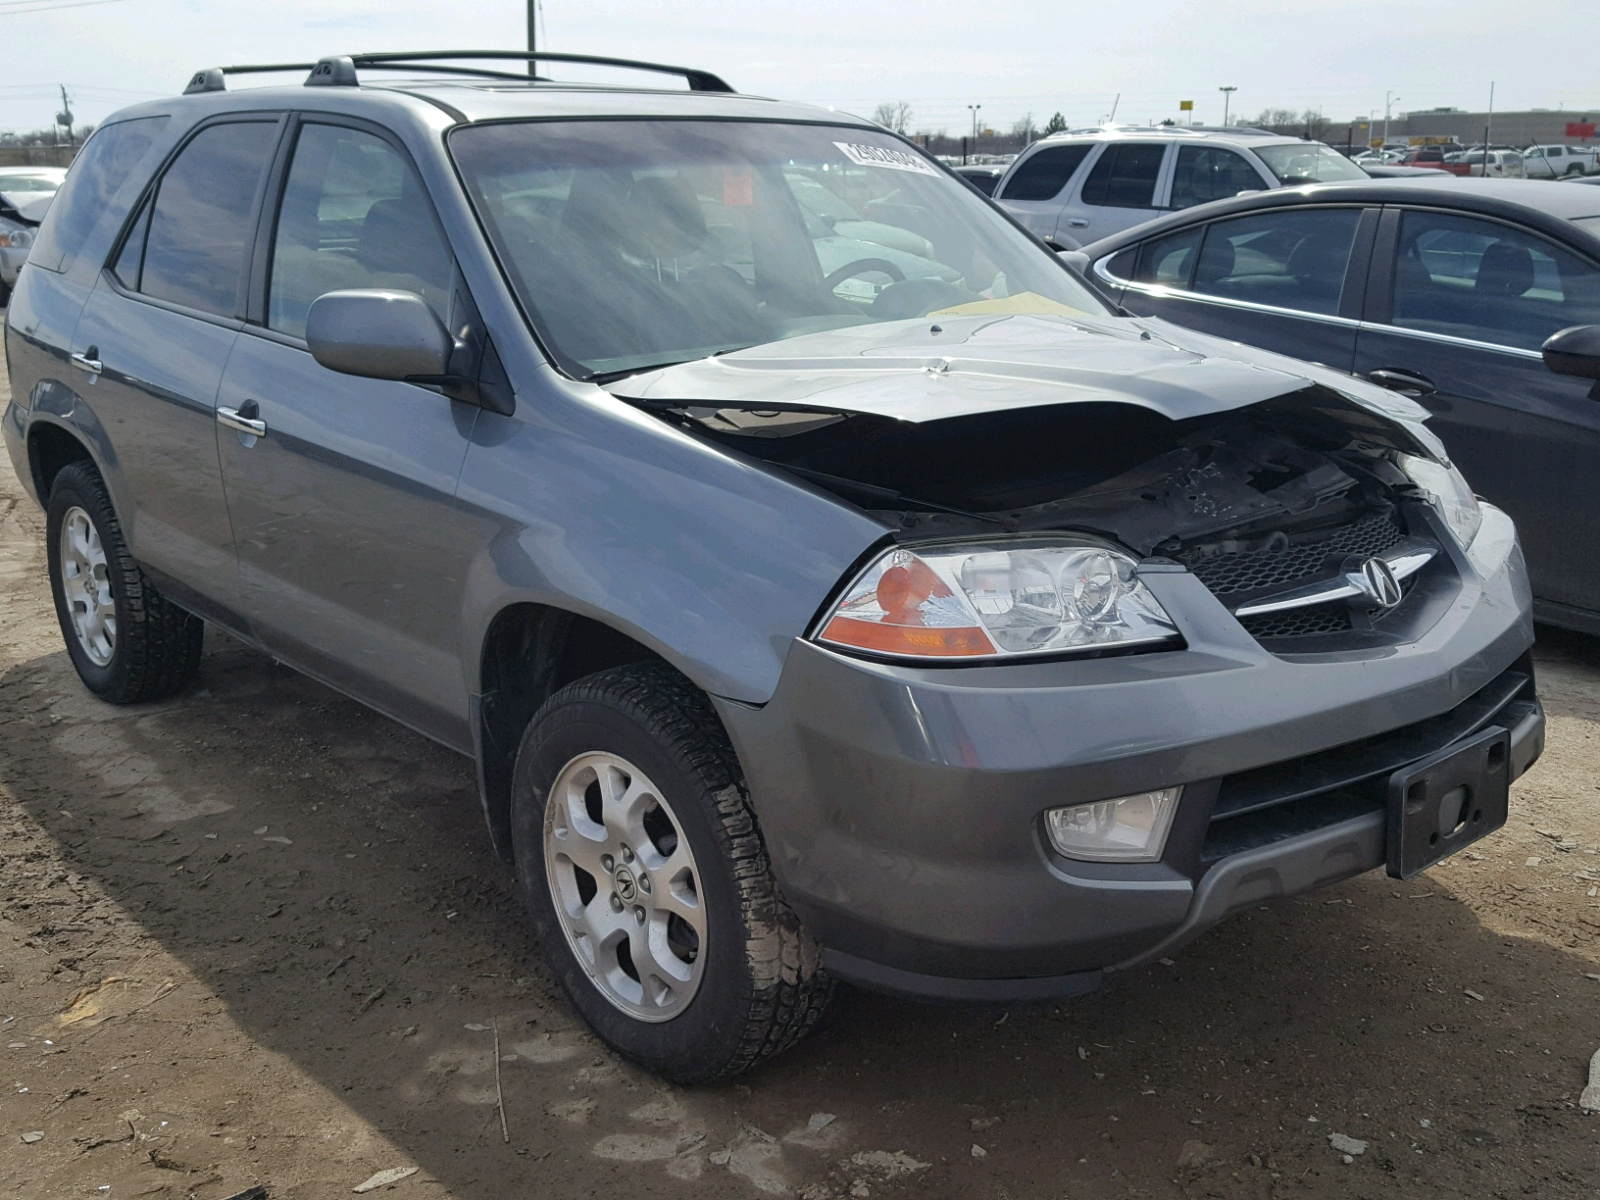 HNYDH GRAY ACURA MDX TOURIN On Sale In IN - Acura mdx 2001 for sale